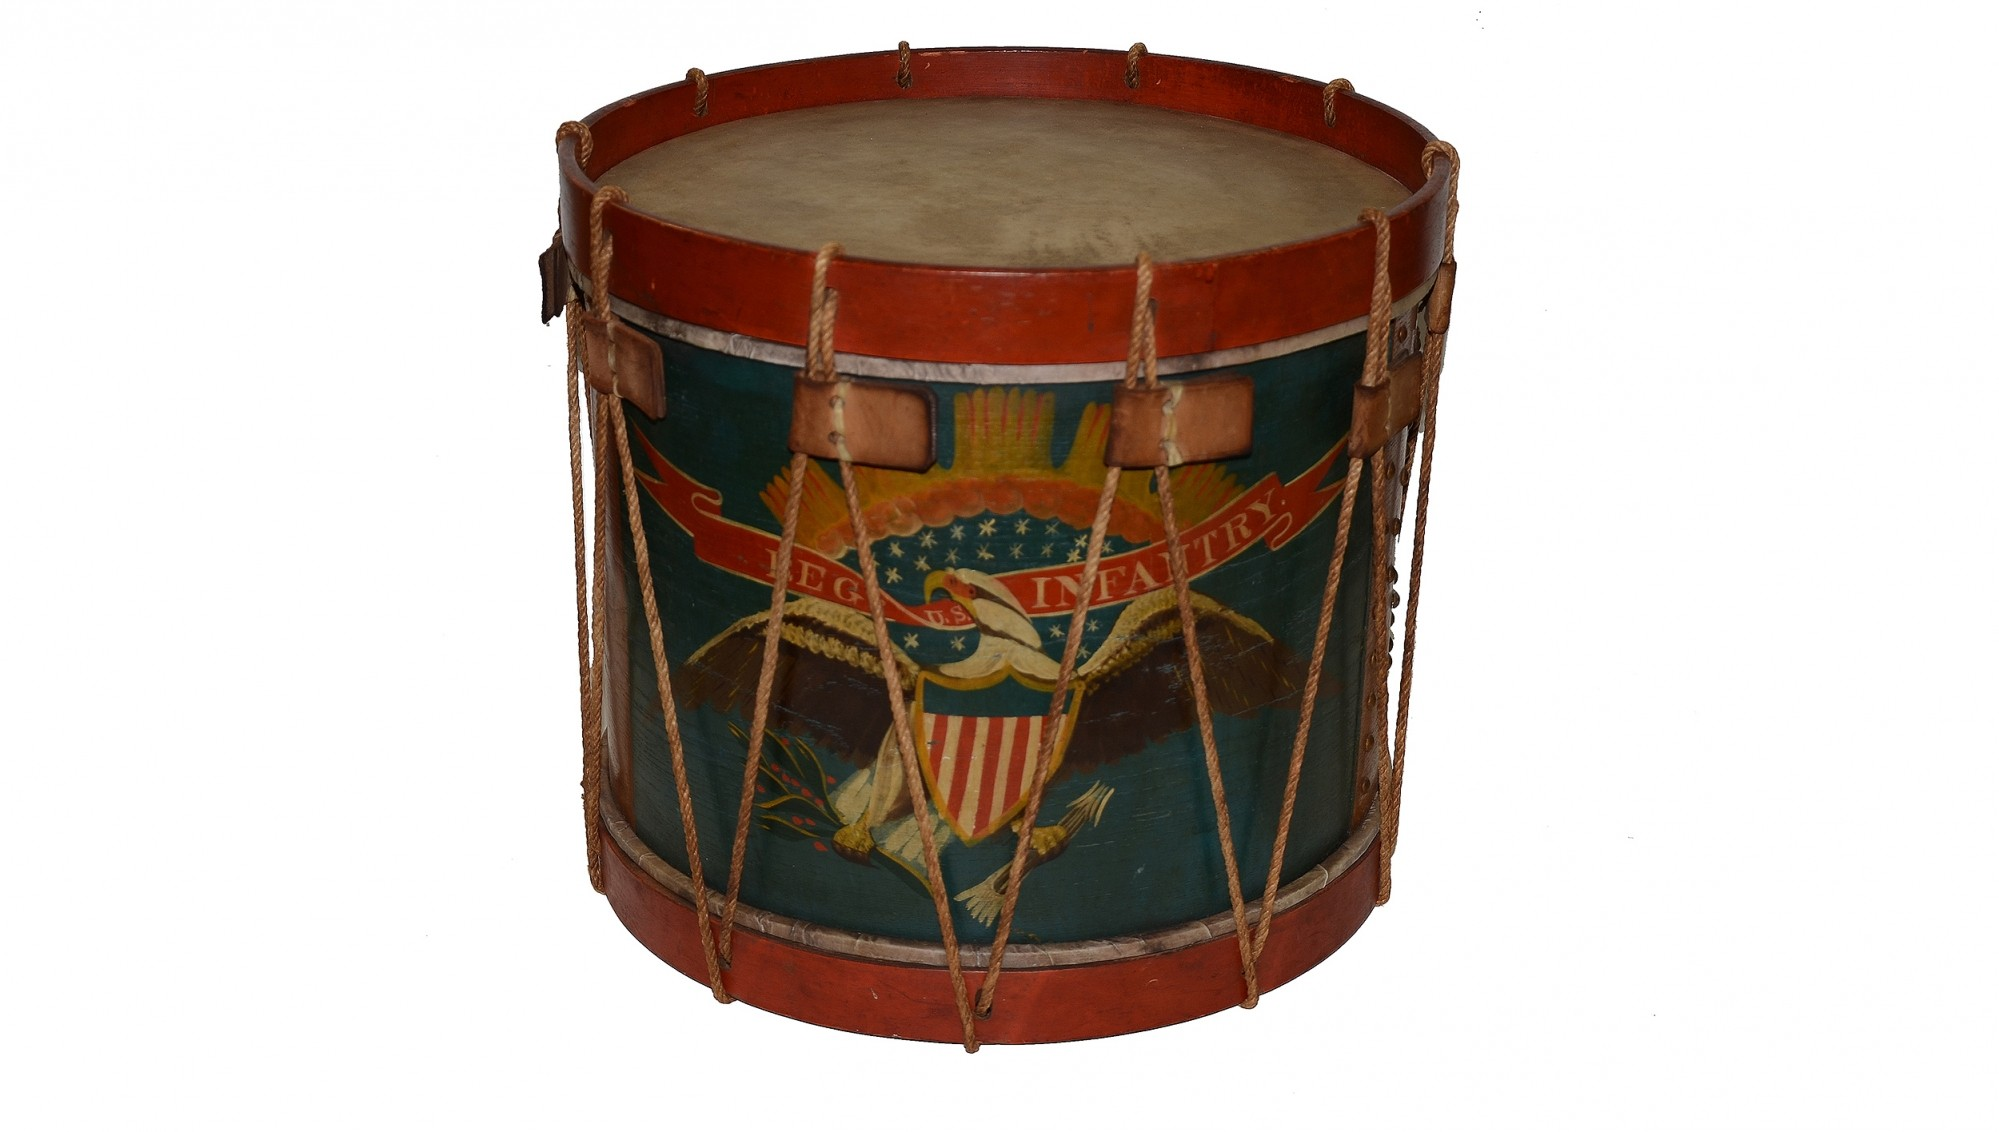 PAINTED CIVIL WAR DRUM MADE BY ALEXANDER ROGERS OF FLUSHING NEW YORK